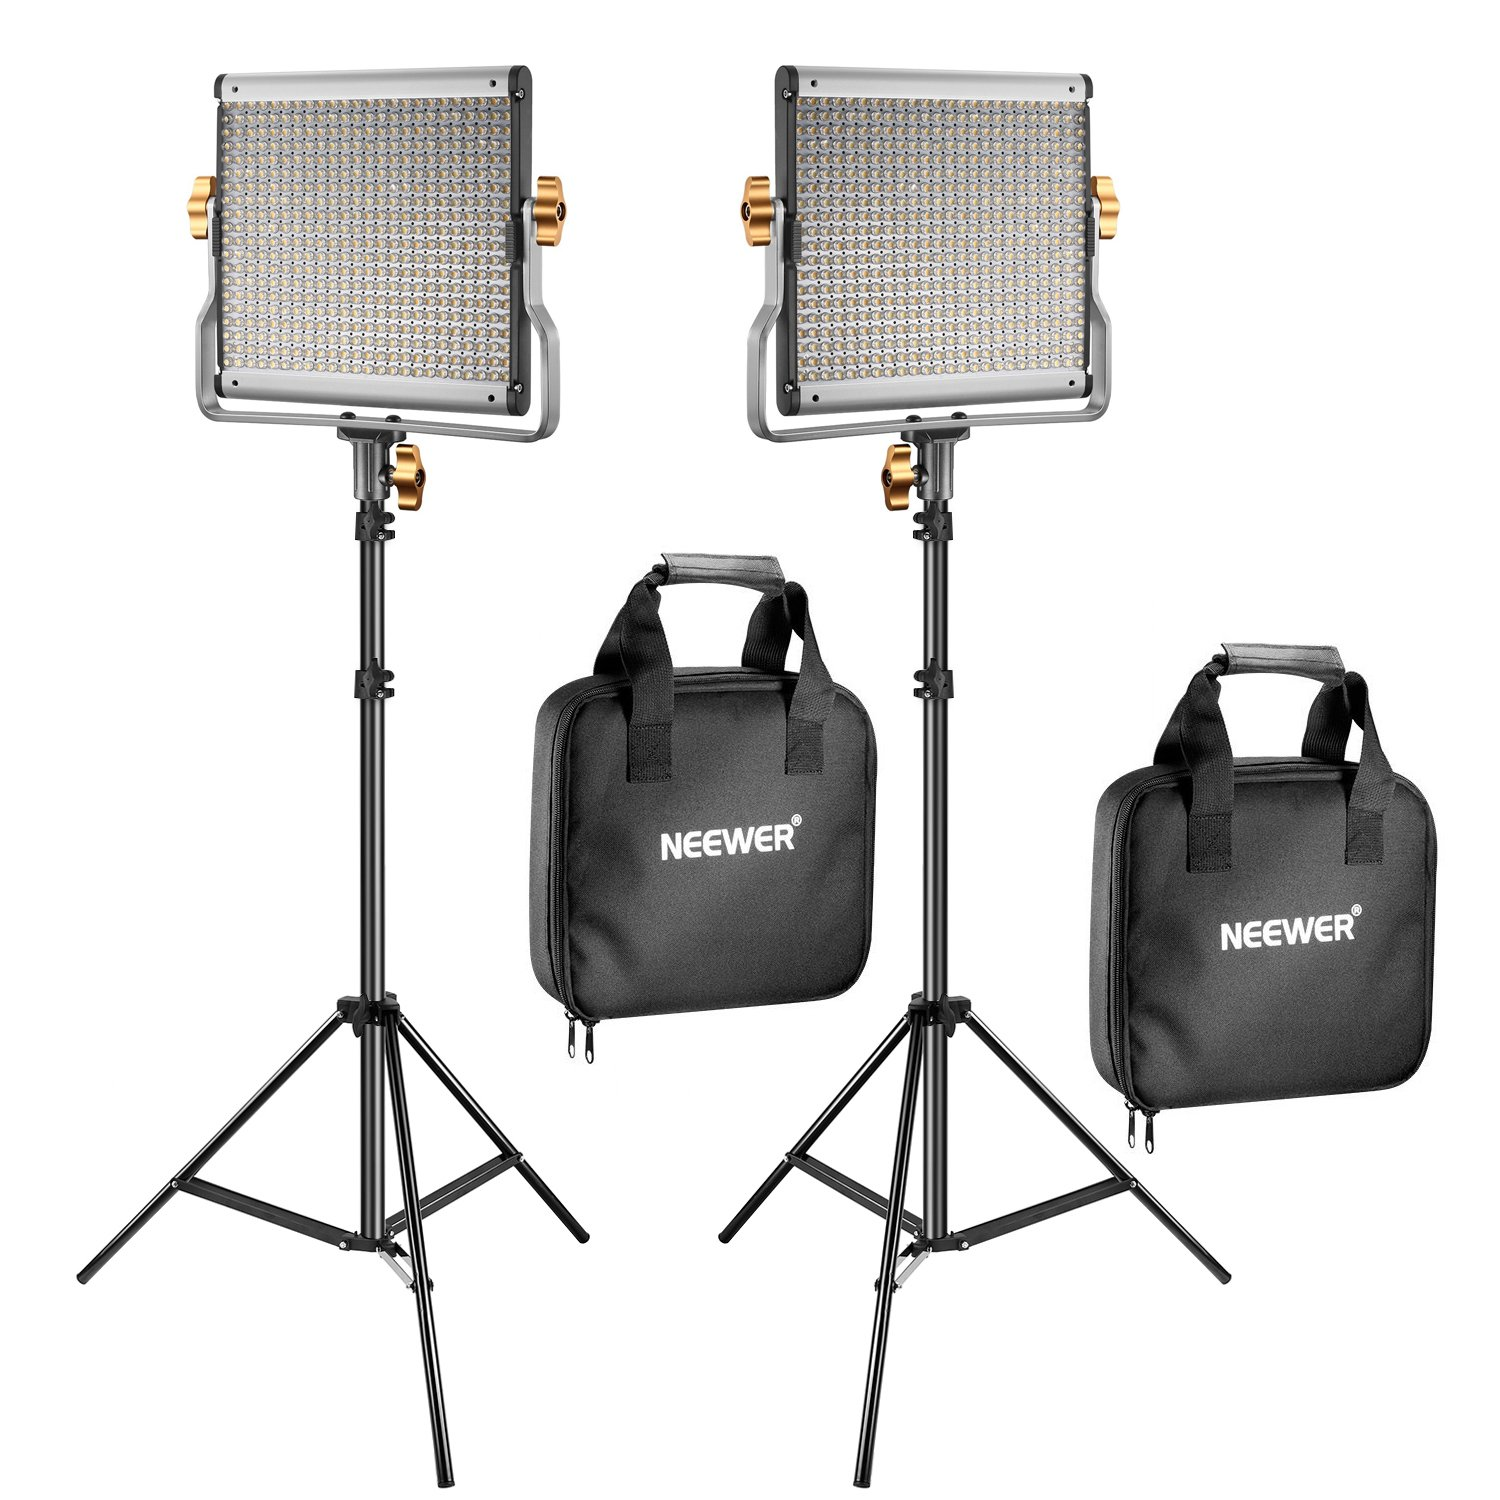 Neewer 2 Packs Dimmable Bi-color 480 LED Video Light and Stand Lighting Kit Includes: 3200-5600K CRI 96+ LED Panel with U Bracket, 75 inches Light Stand for YouTube Studio Photography, Video Shooting by Neewer